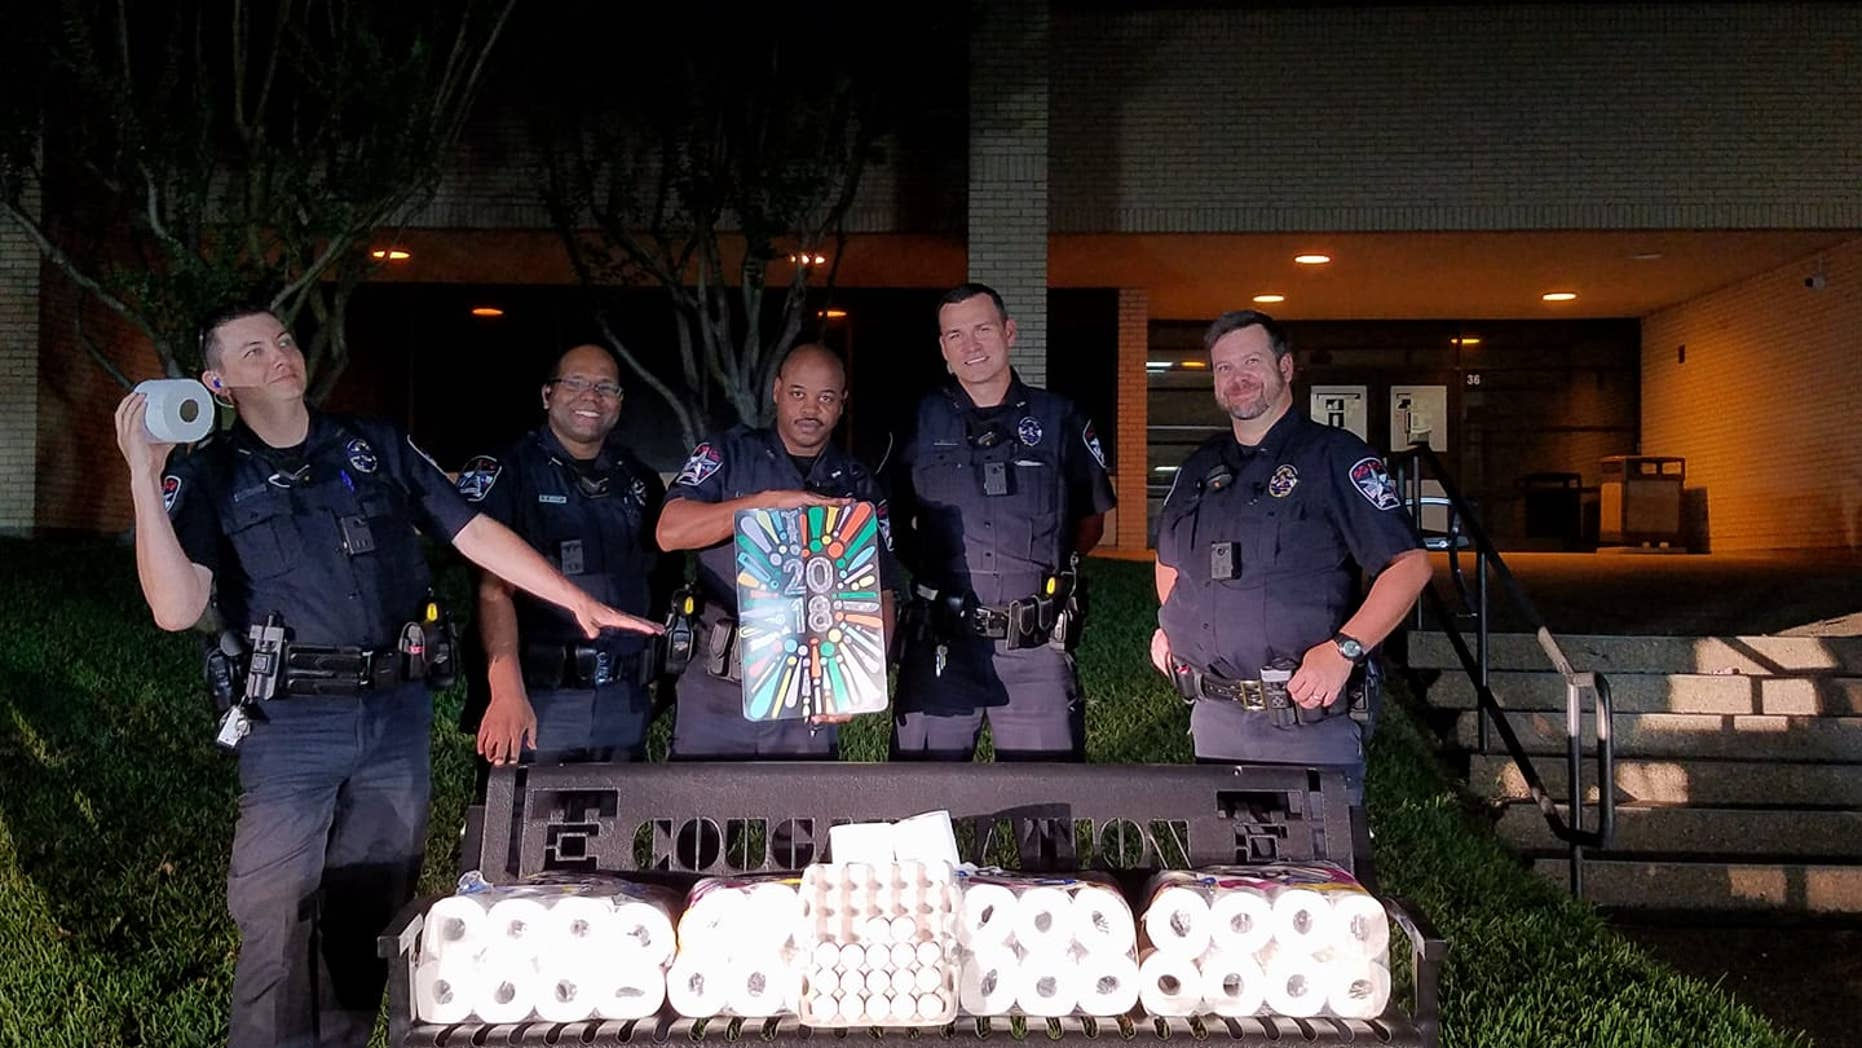 Police in The Colony, Texas, have offered their thanks to three students over a botched prank.